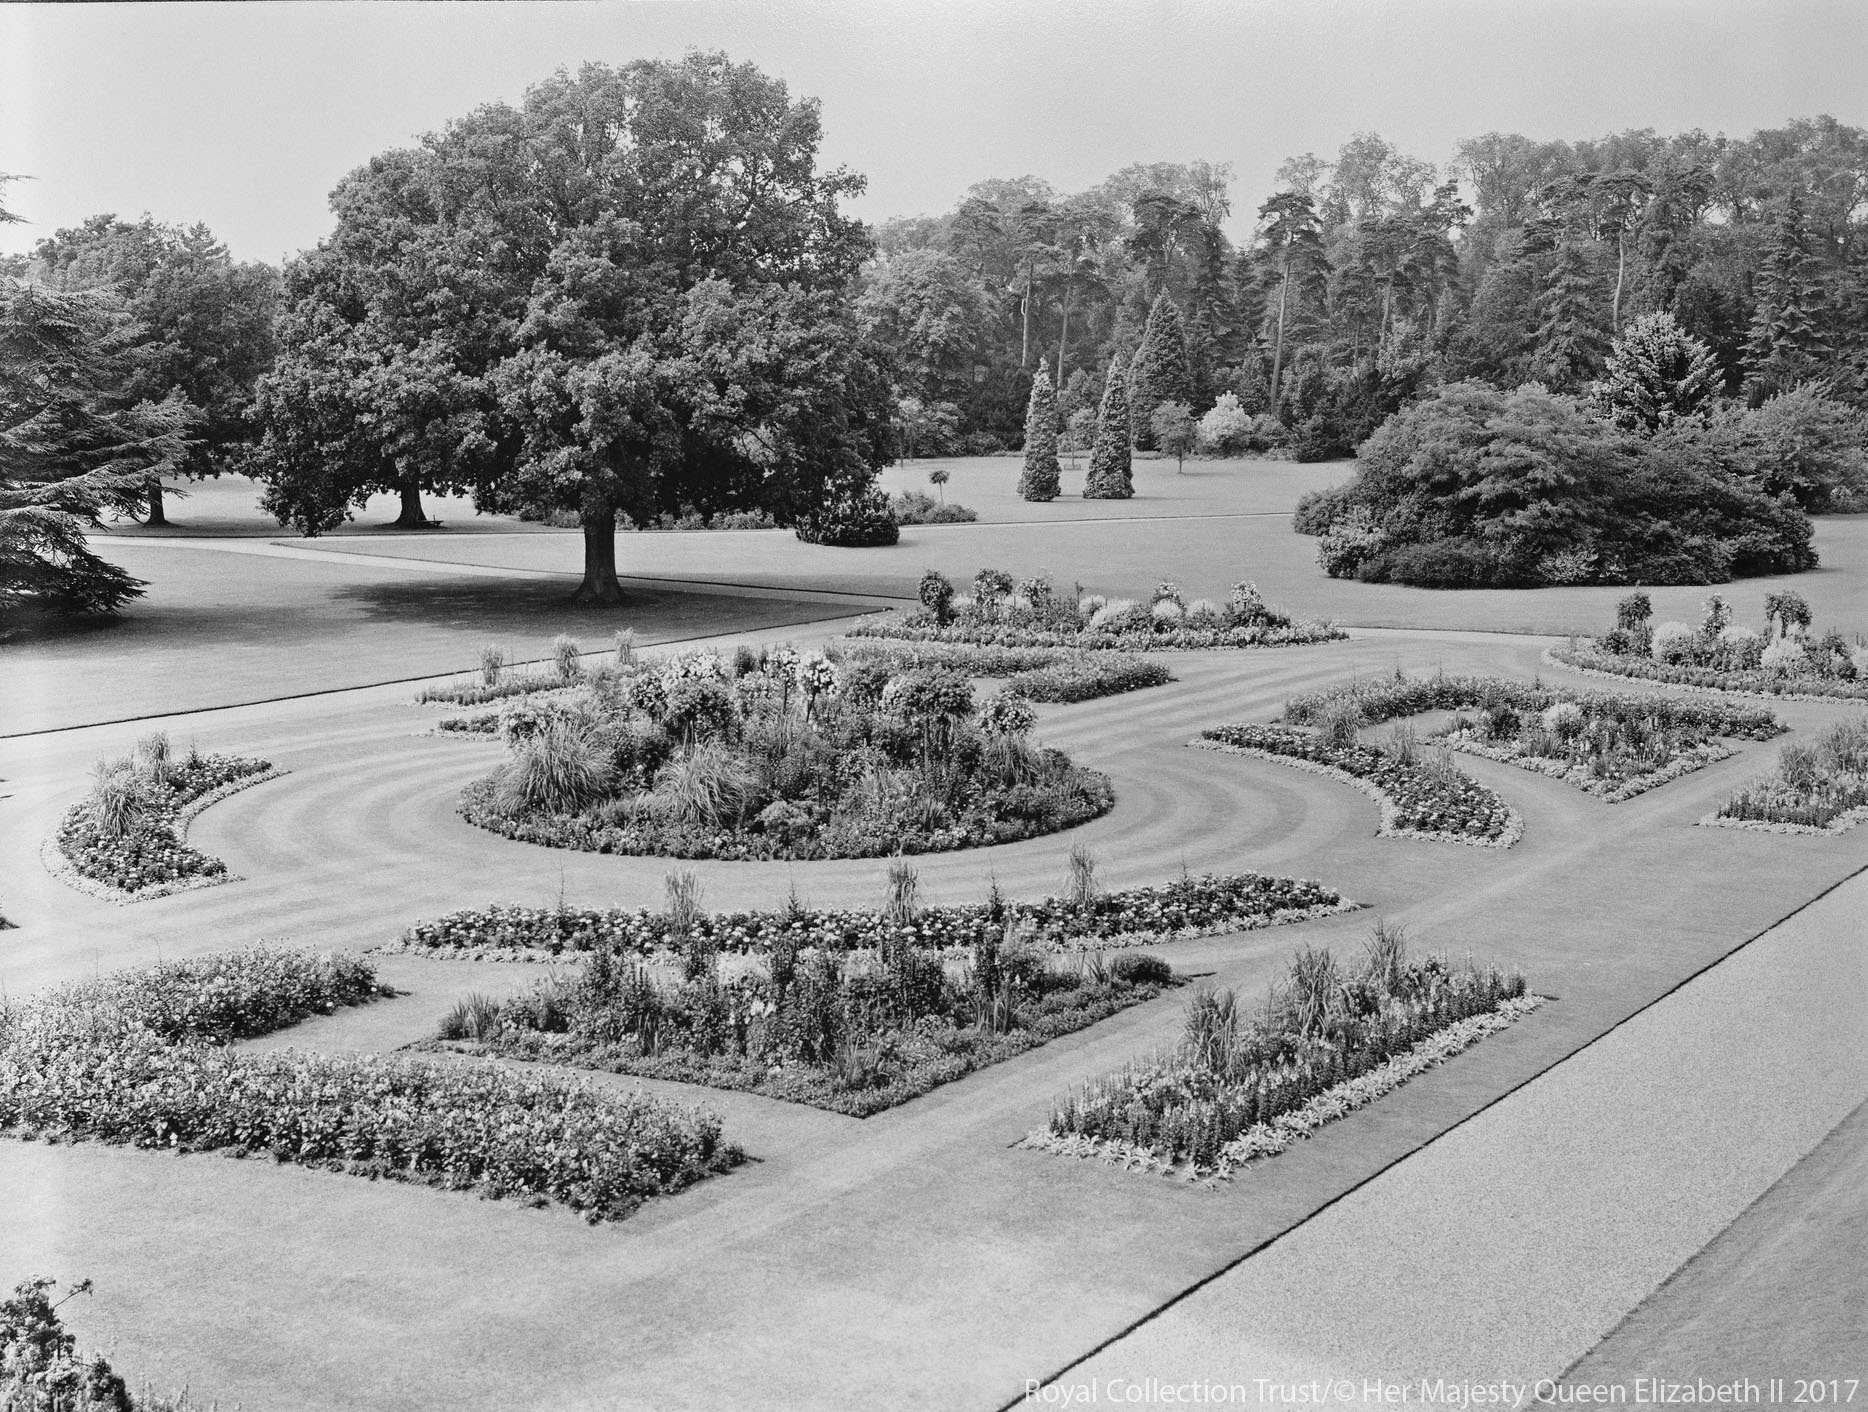 The gardens at Sandringham